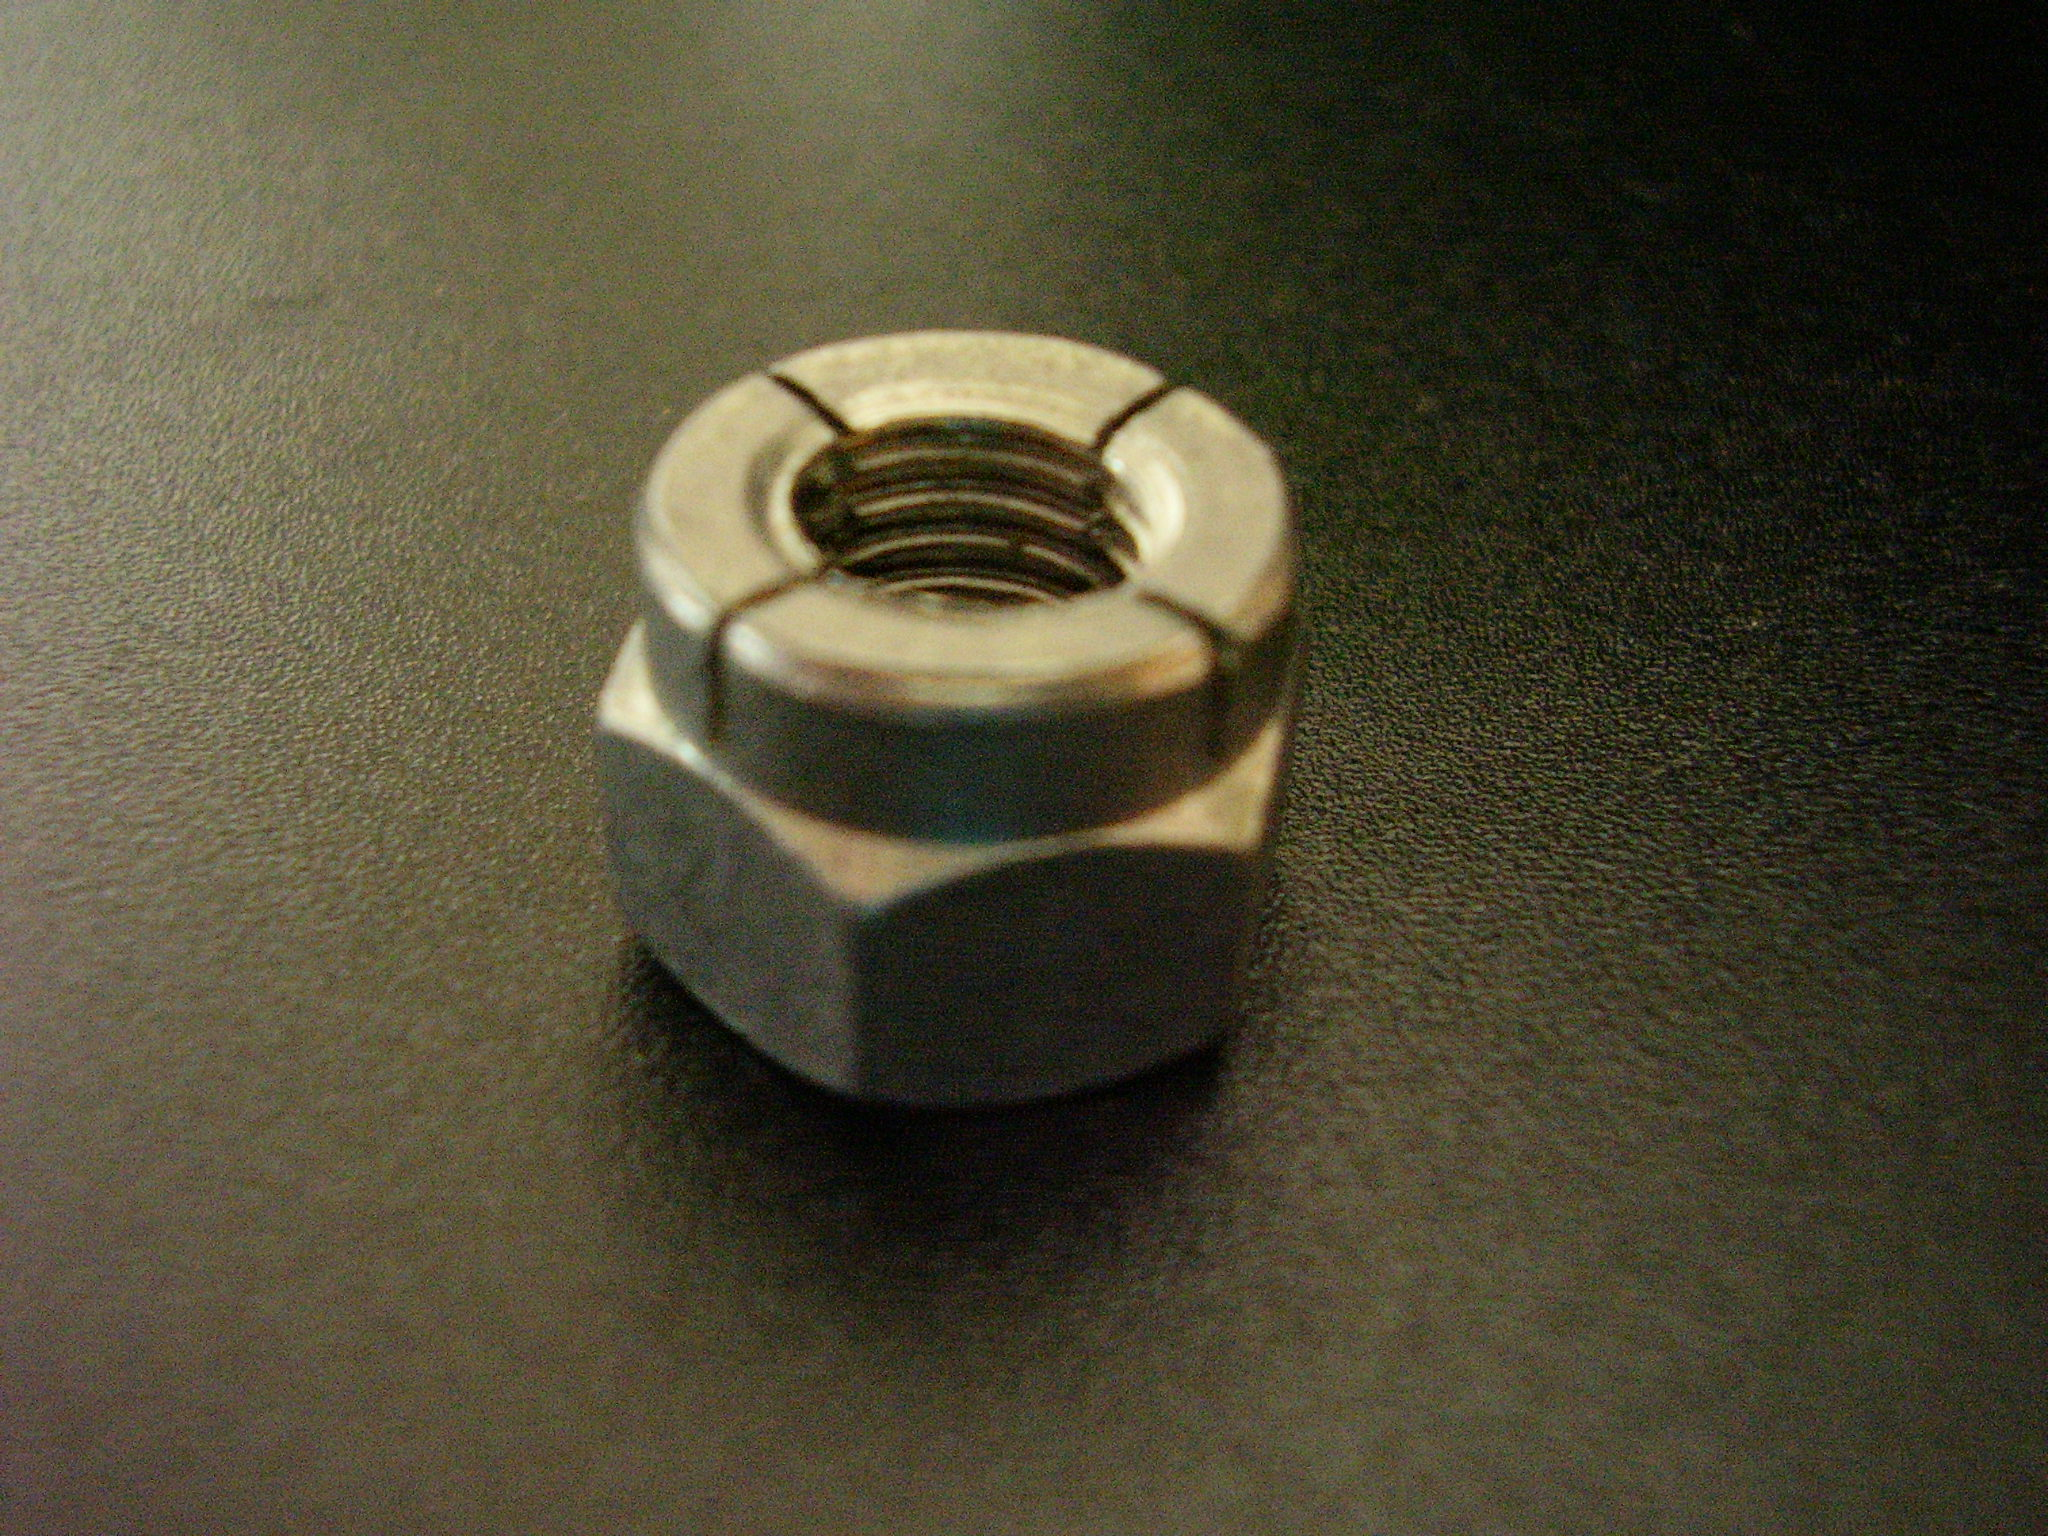 M14 All Metal Self Locking Nut 'GRIPTITE'